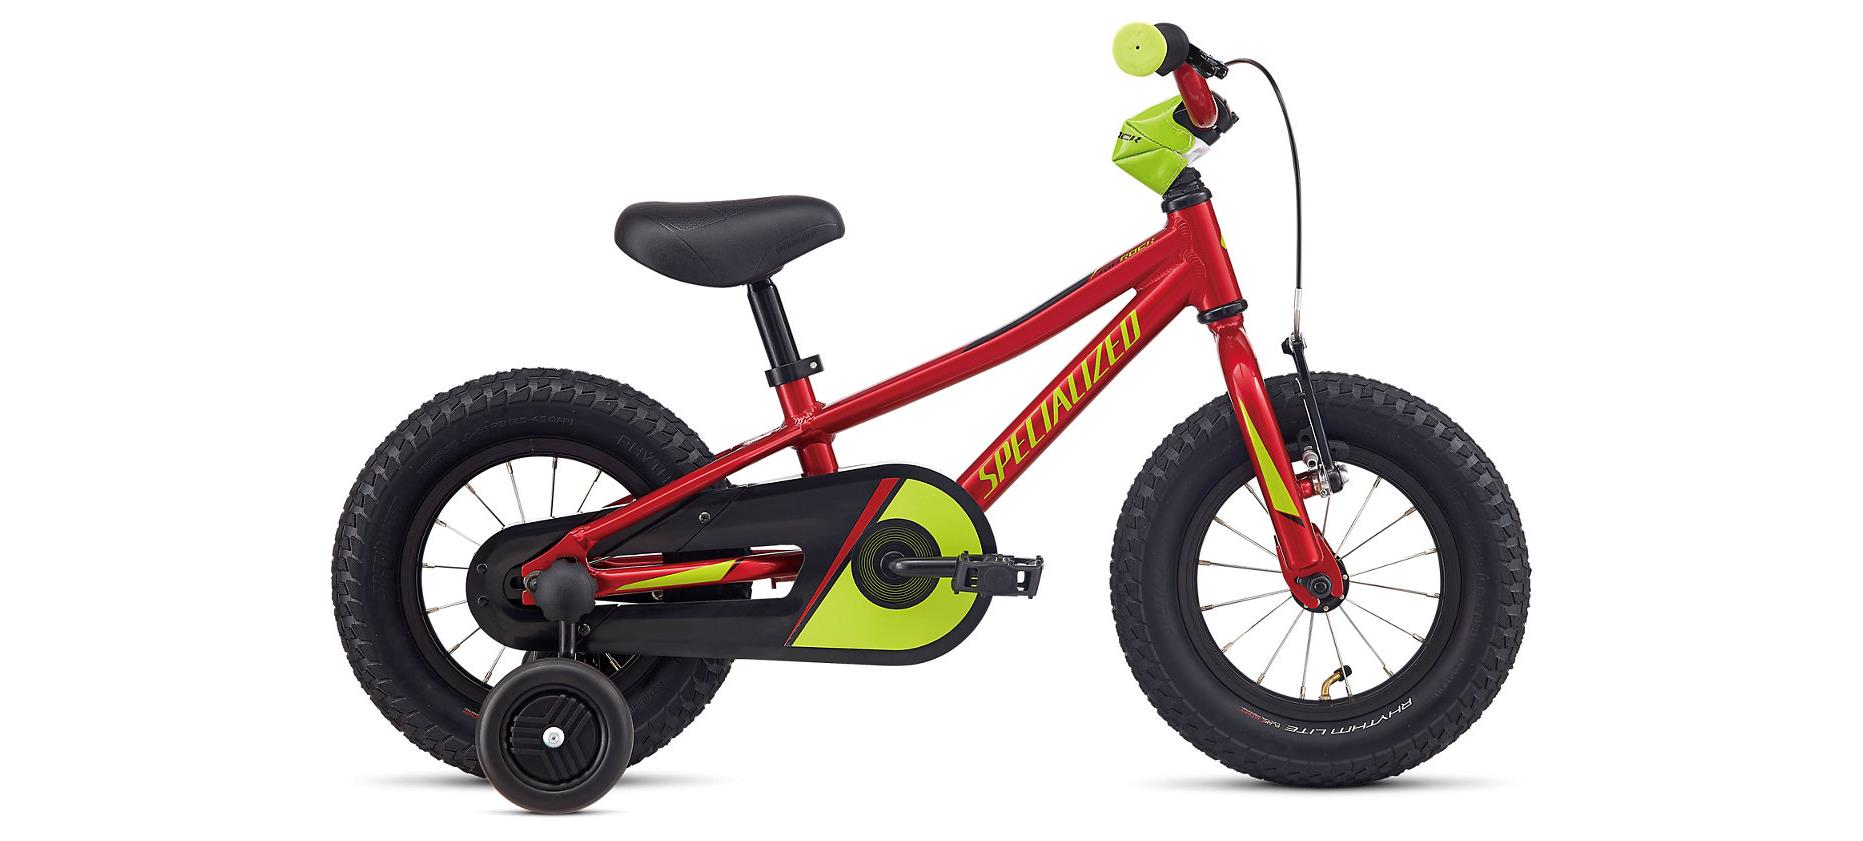 Specialized Riprock Coaster 12 Candy Red/Hyper Green 2020 - 12 -